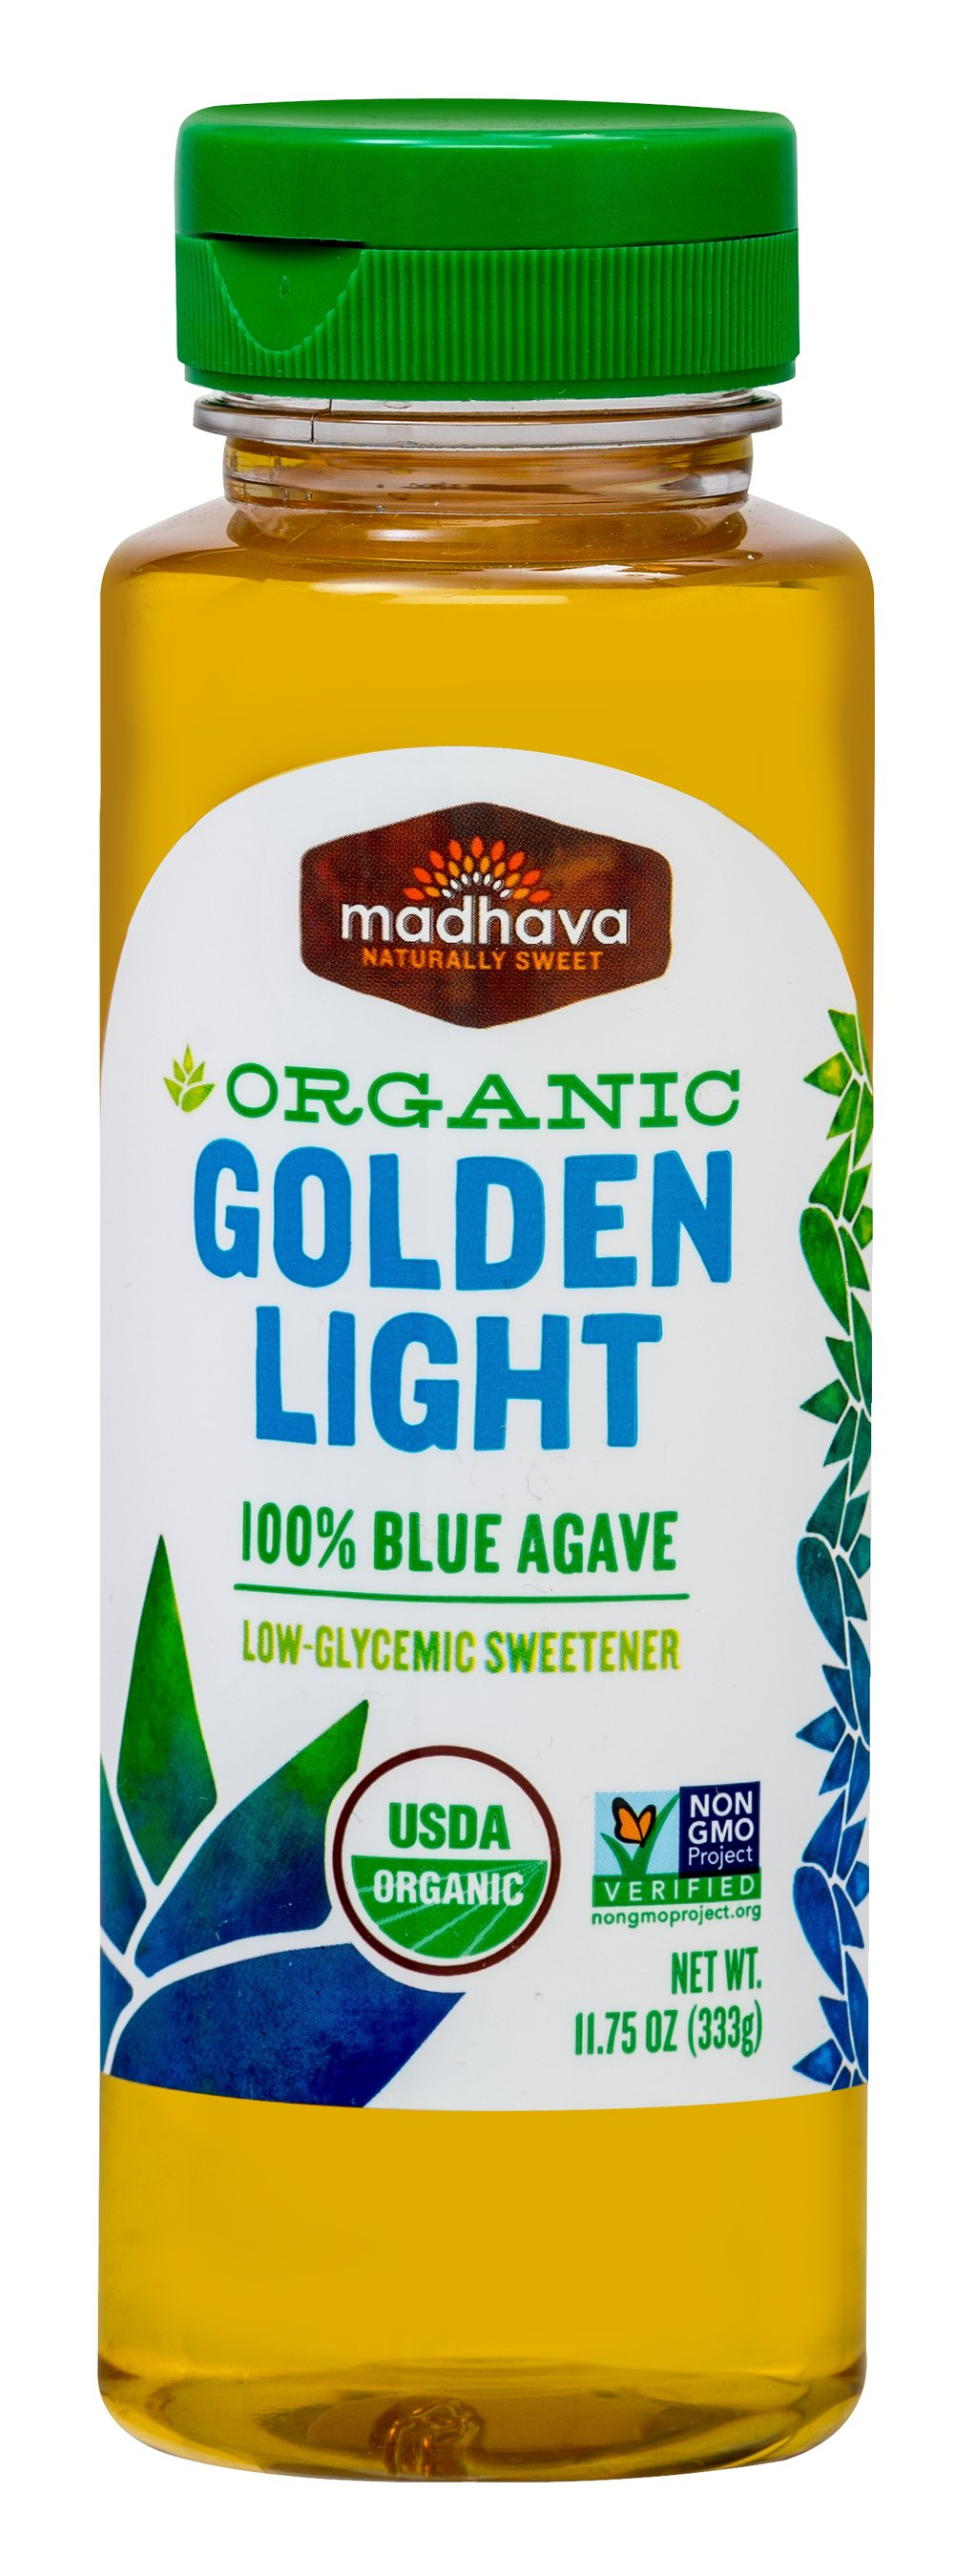 Organic Light Agave Nectar <p><b>From the Manufacturer's Label: </p></b><p>100% Pure Agave Nectar</p> <p>Madhava's Agave Nectar has many fine qualities that make it ideal for all of your sweetening needs.  Among them are its certified purity, consistent delicious mild flavor and a lengthy shelf life (won't crystallize).  And, importantly, agave nectar has a low glycemic index that is beneficial for many.  Plus, it is so easy to use as it pour